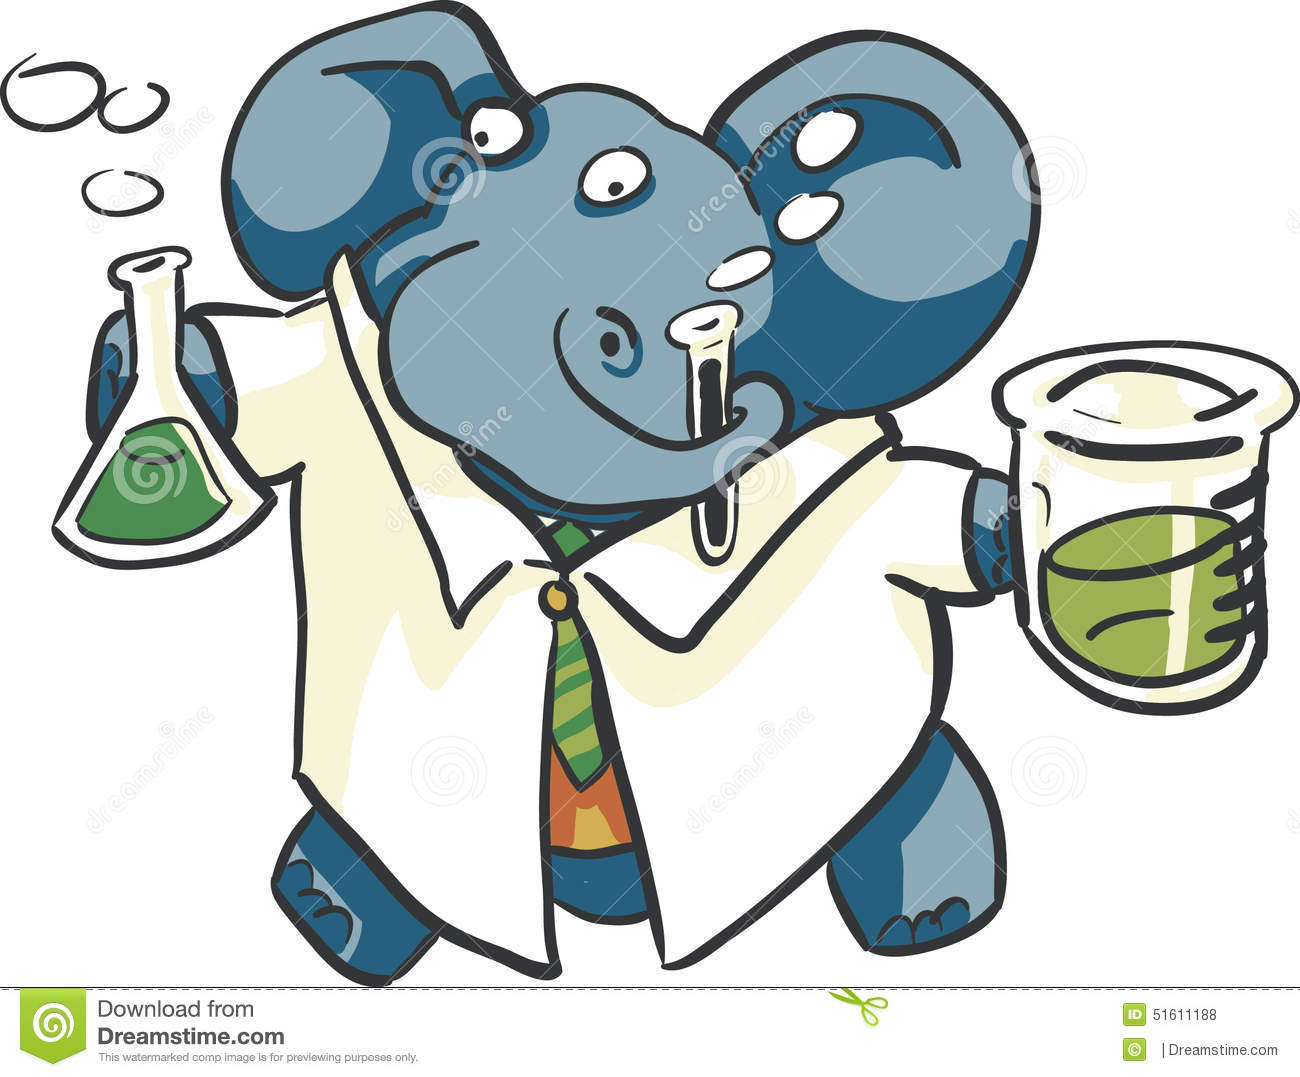 lab-elephants-scientist-elephant-beakers